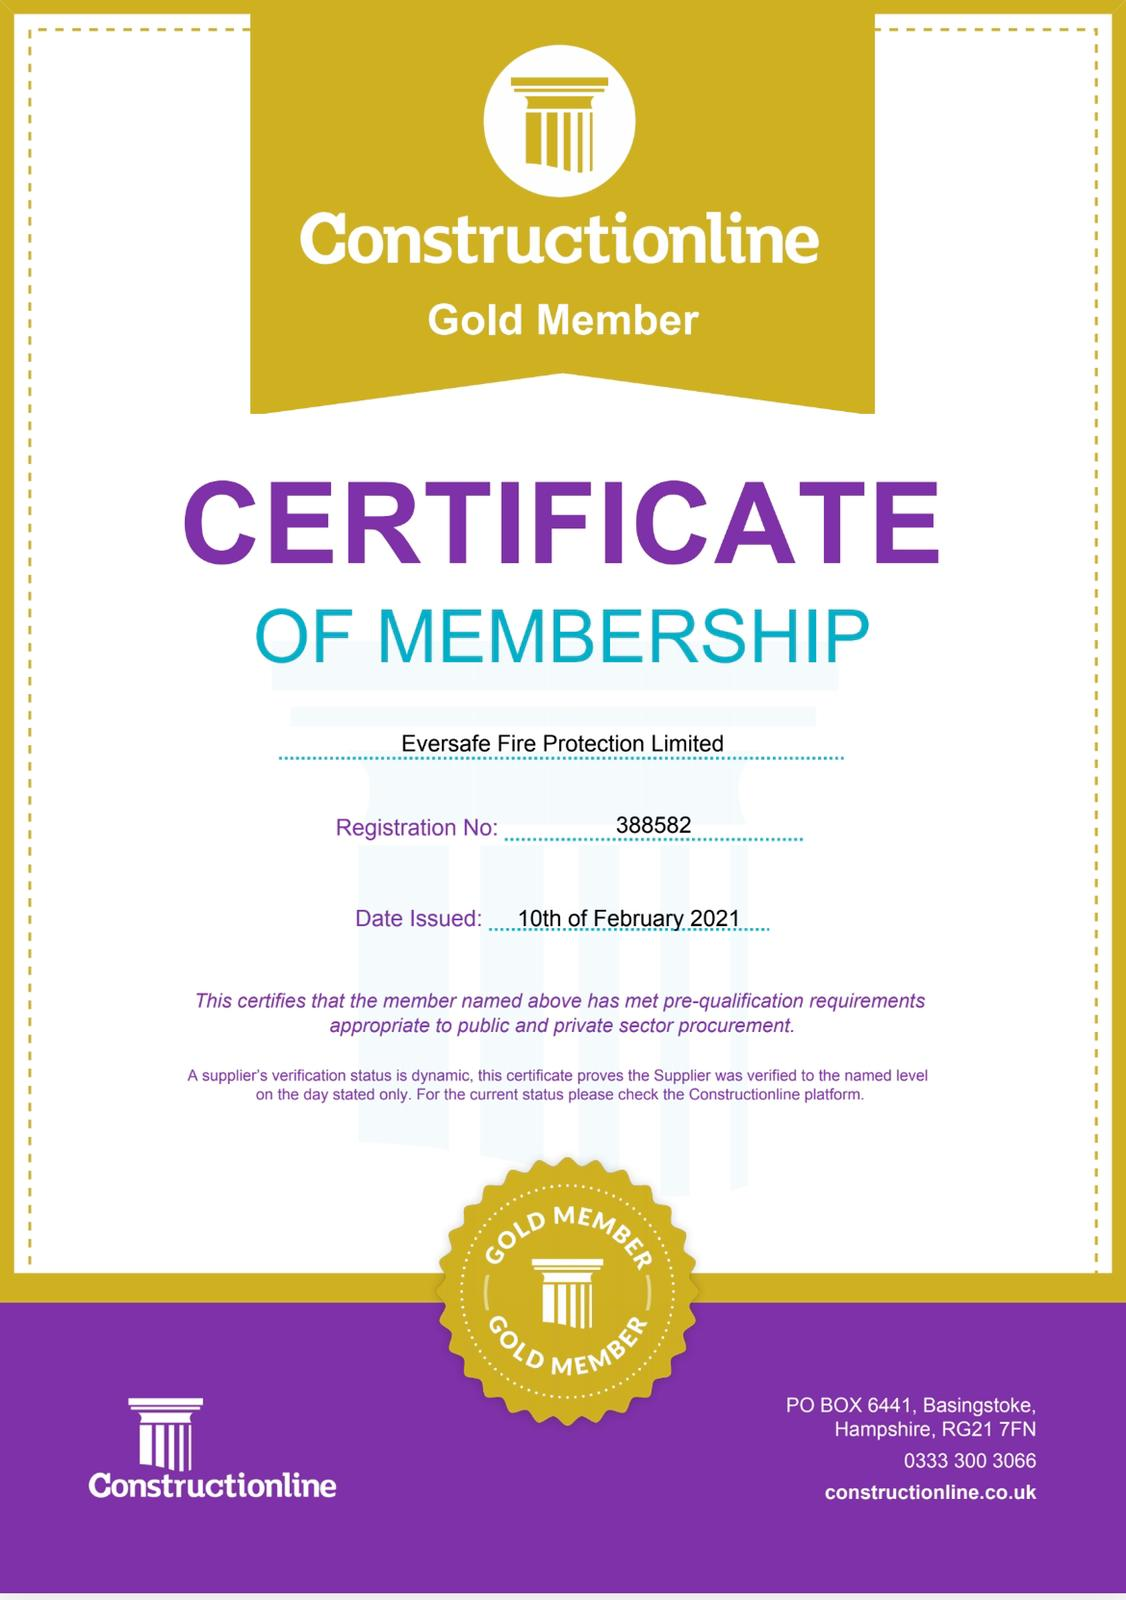 Constructionline Gold Member Certificate